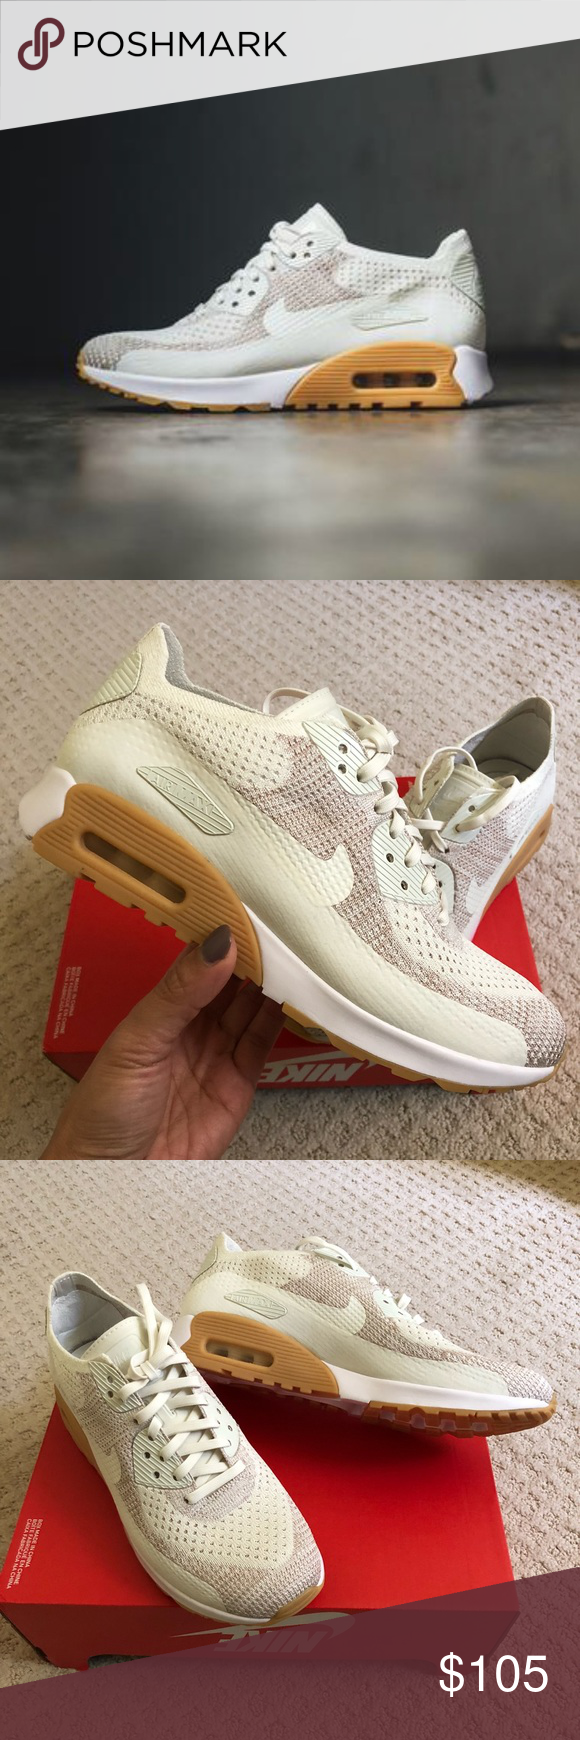 best cheap 6e74b 9eafb 🎆New🎆 NIKE Air Max 90 Ultra 2.0 Flyknit ~ 10 brand new no lid size 10 sail  white sand gum yellow comes from smoke free home 100% authentic J180000054  Nike ...